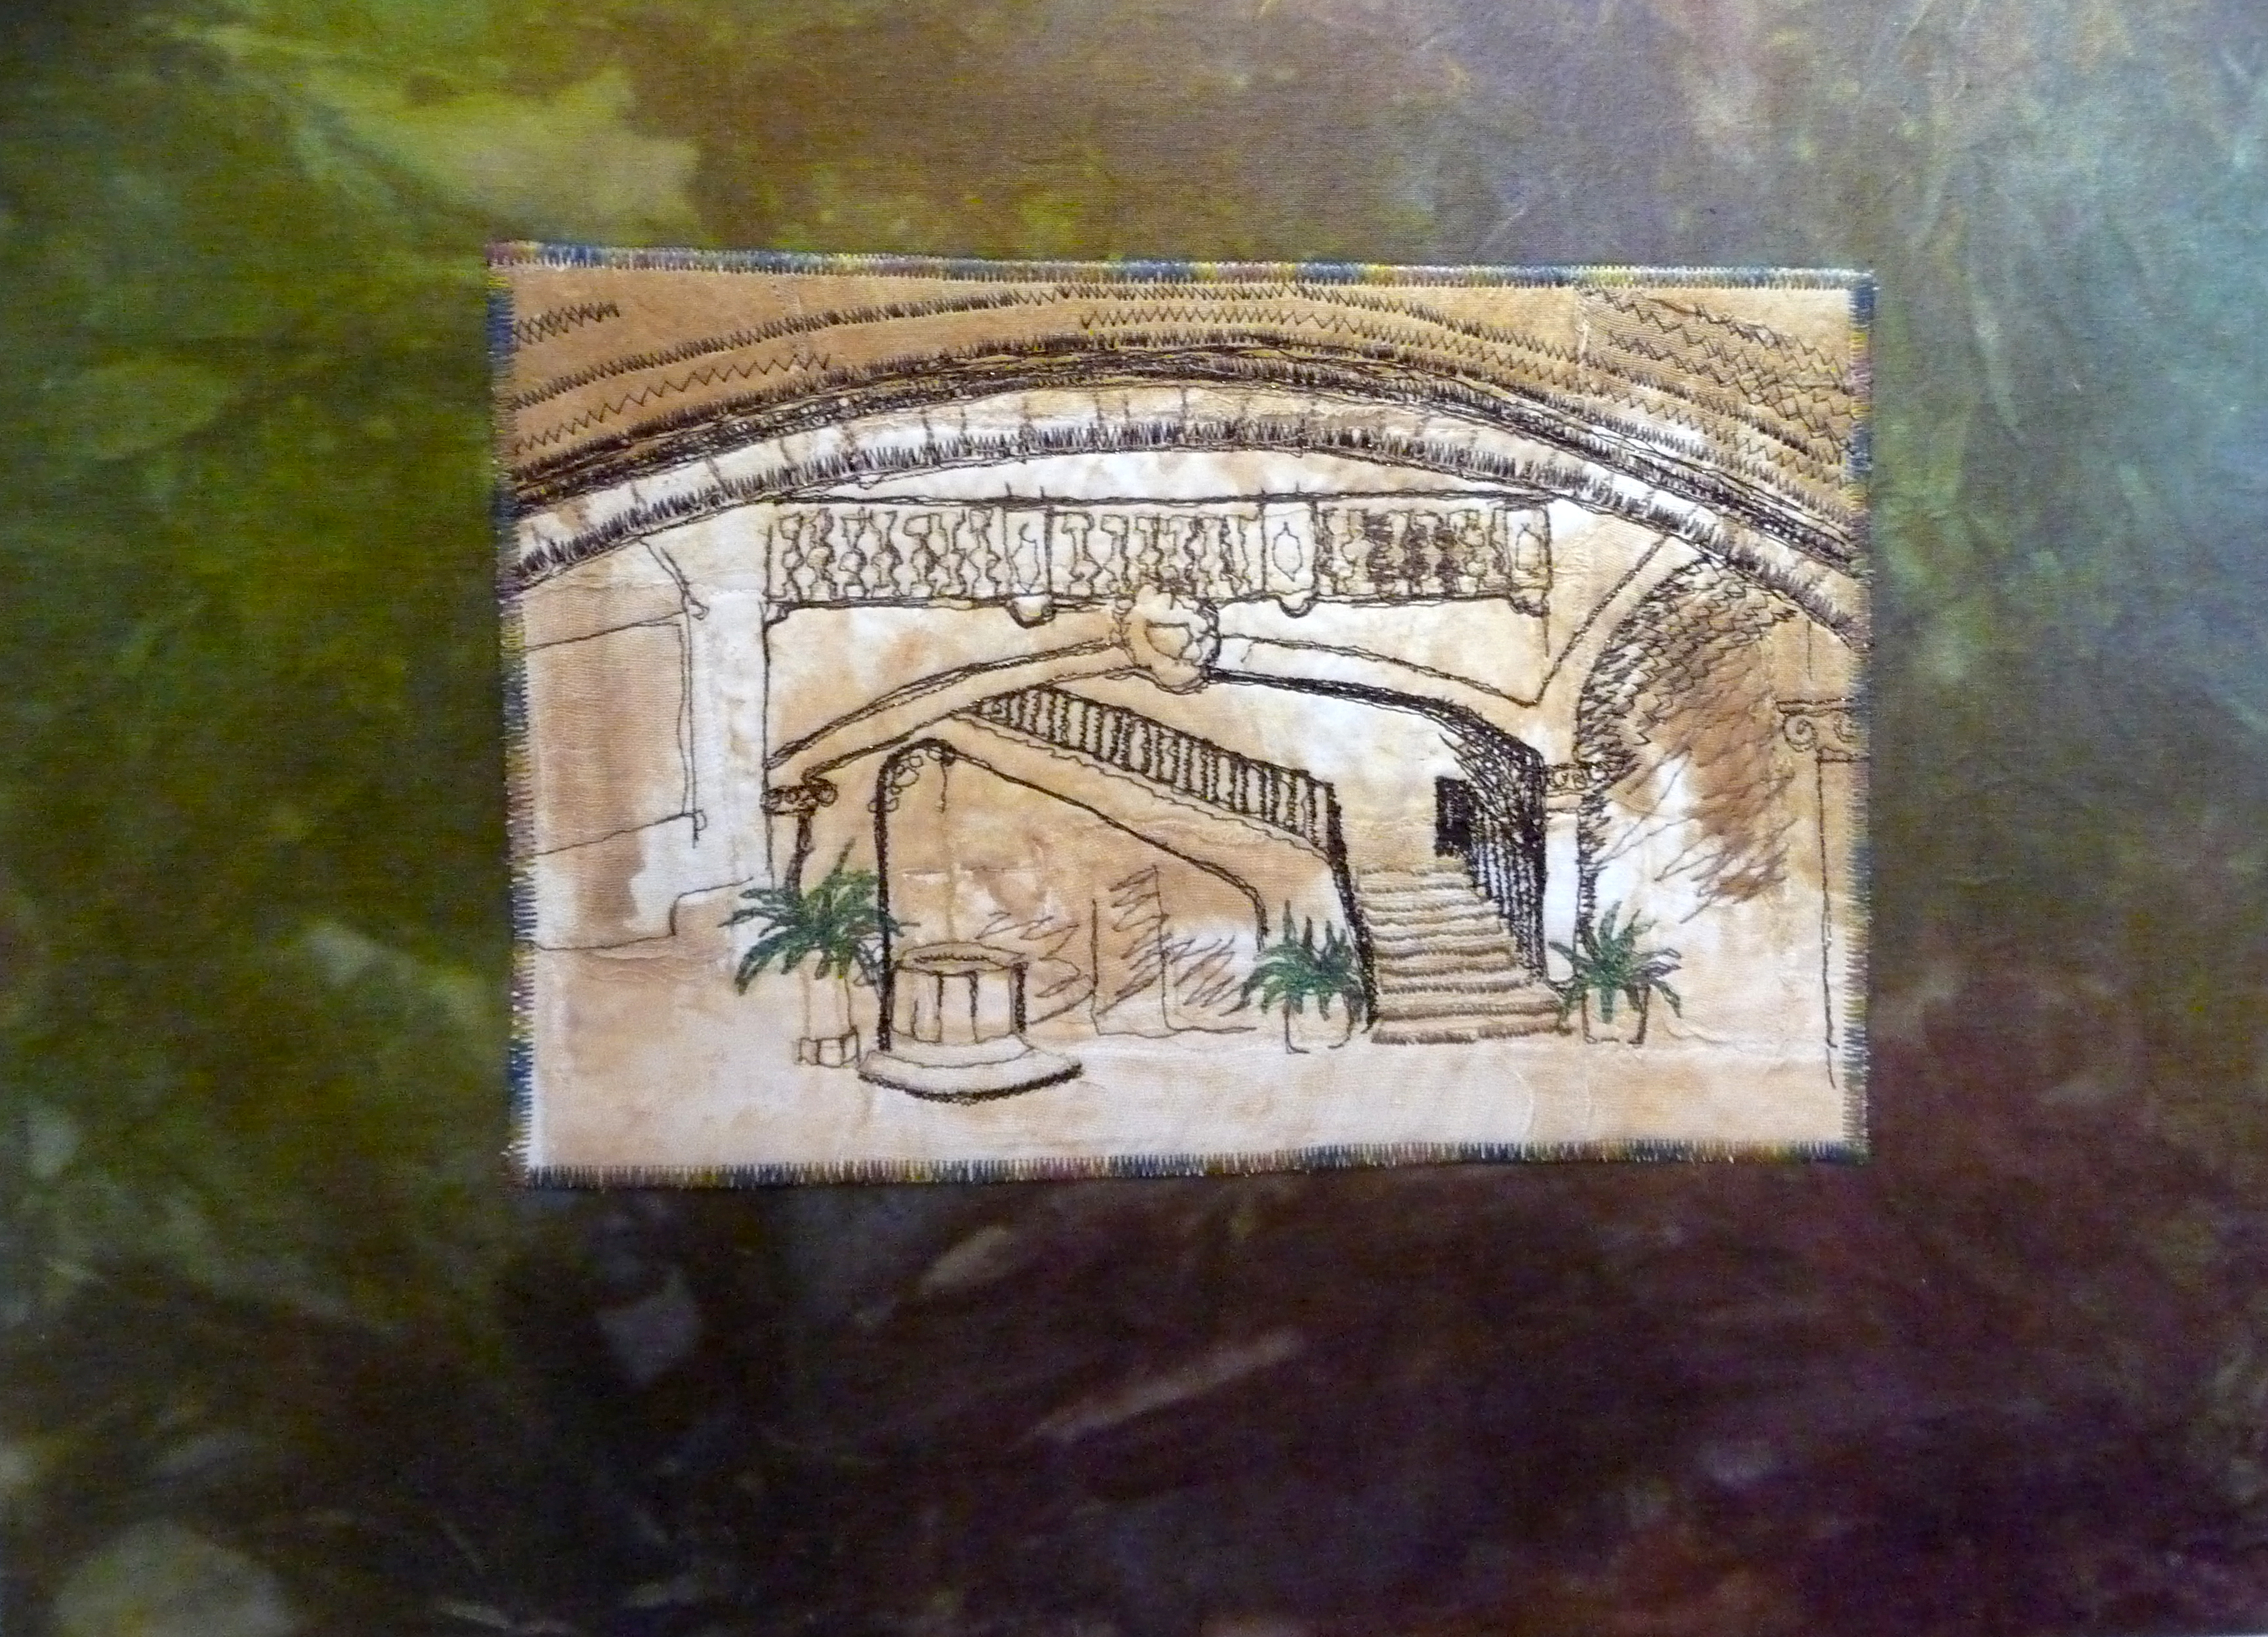 SPANISH STAIRCASE by Valerie Cockcroft, machine embroidered painted fabric